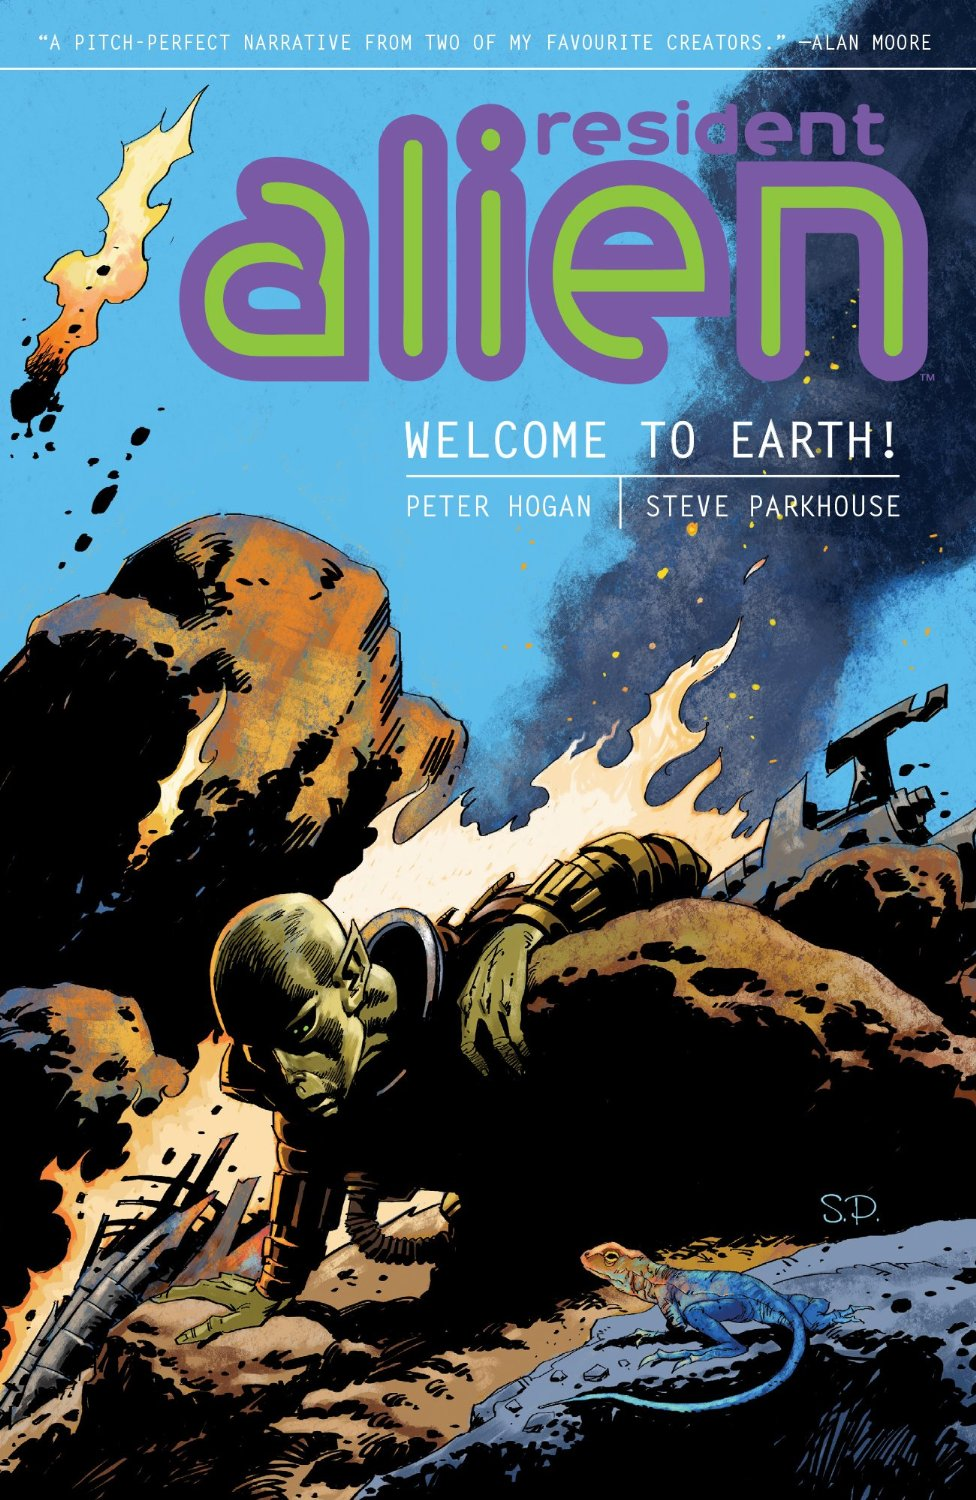 Resident Alien: Welcome To Earth!